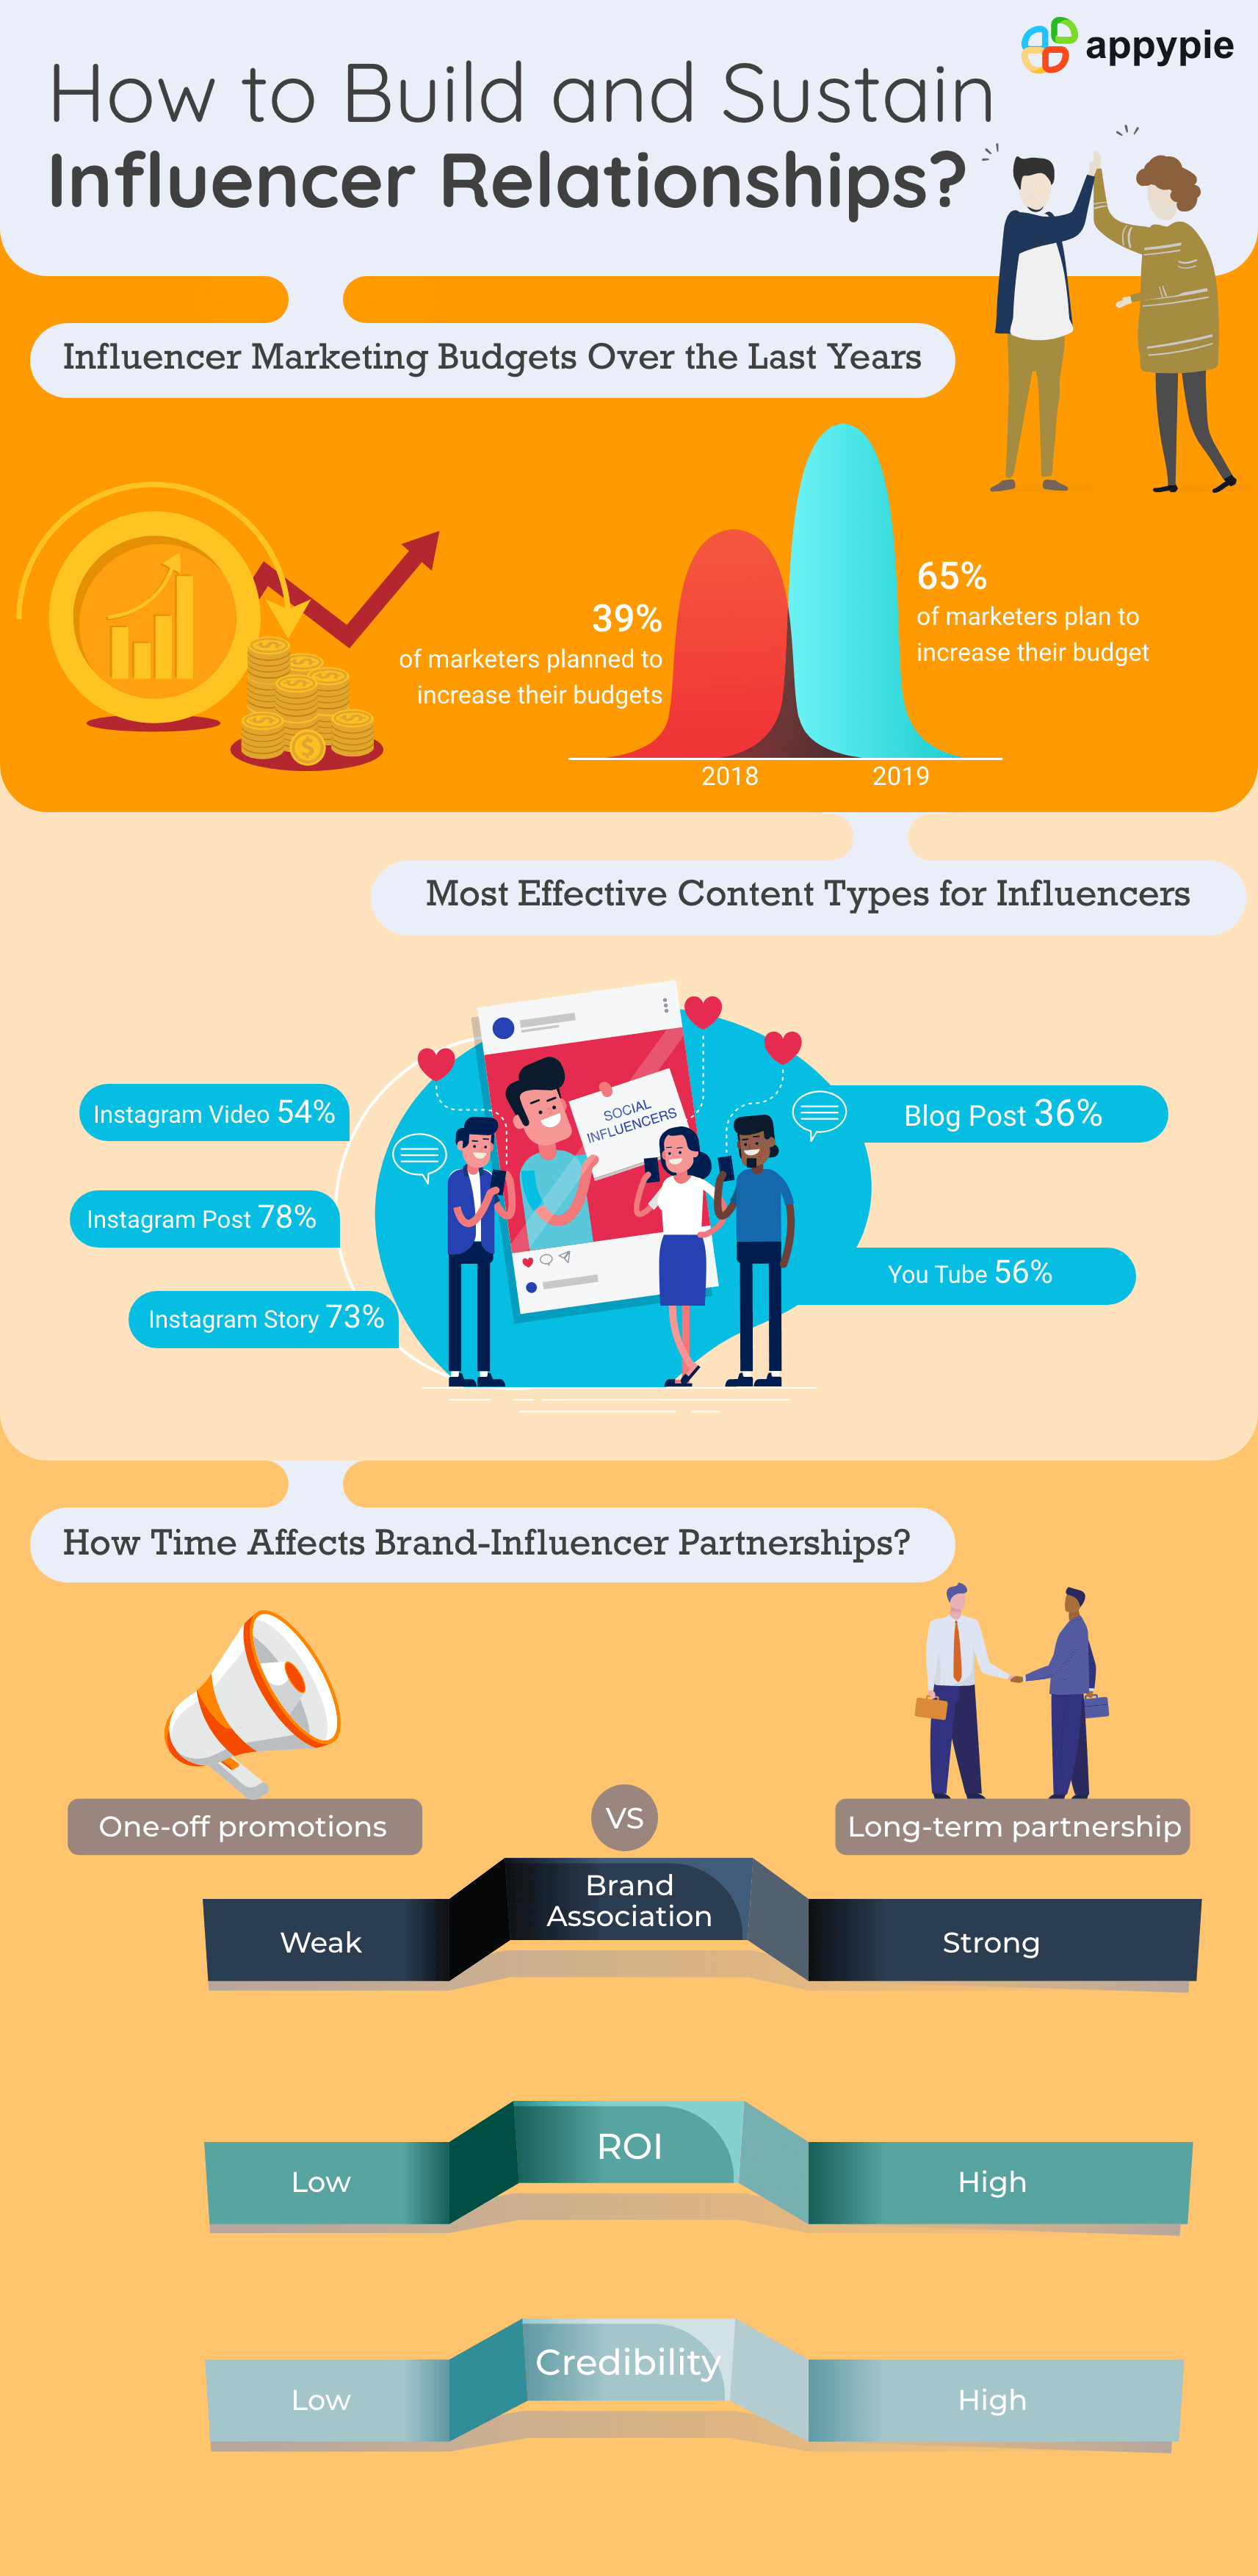 Appy Pie - How to Find, Build, and Sustain Influencer Relationships